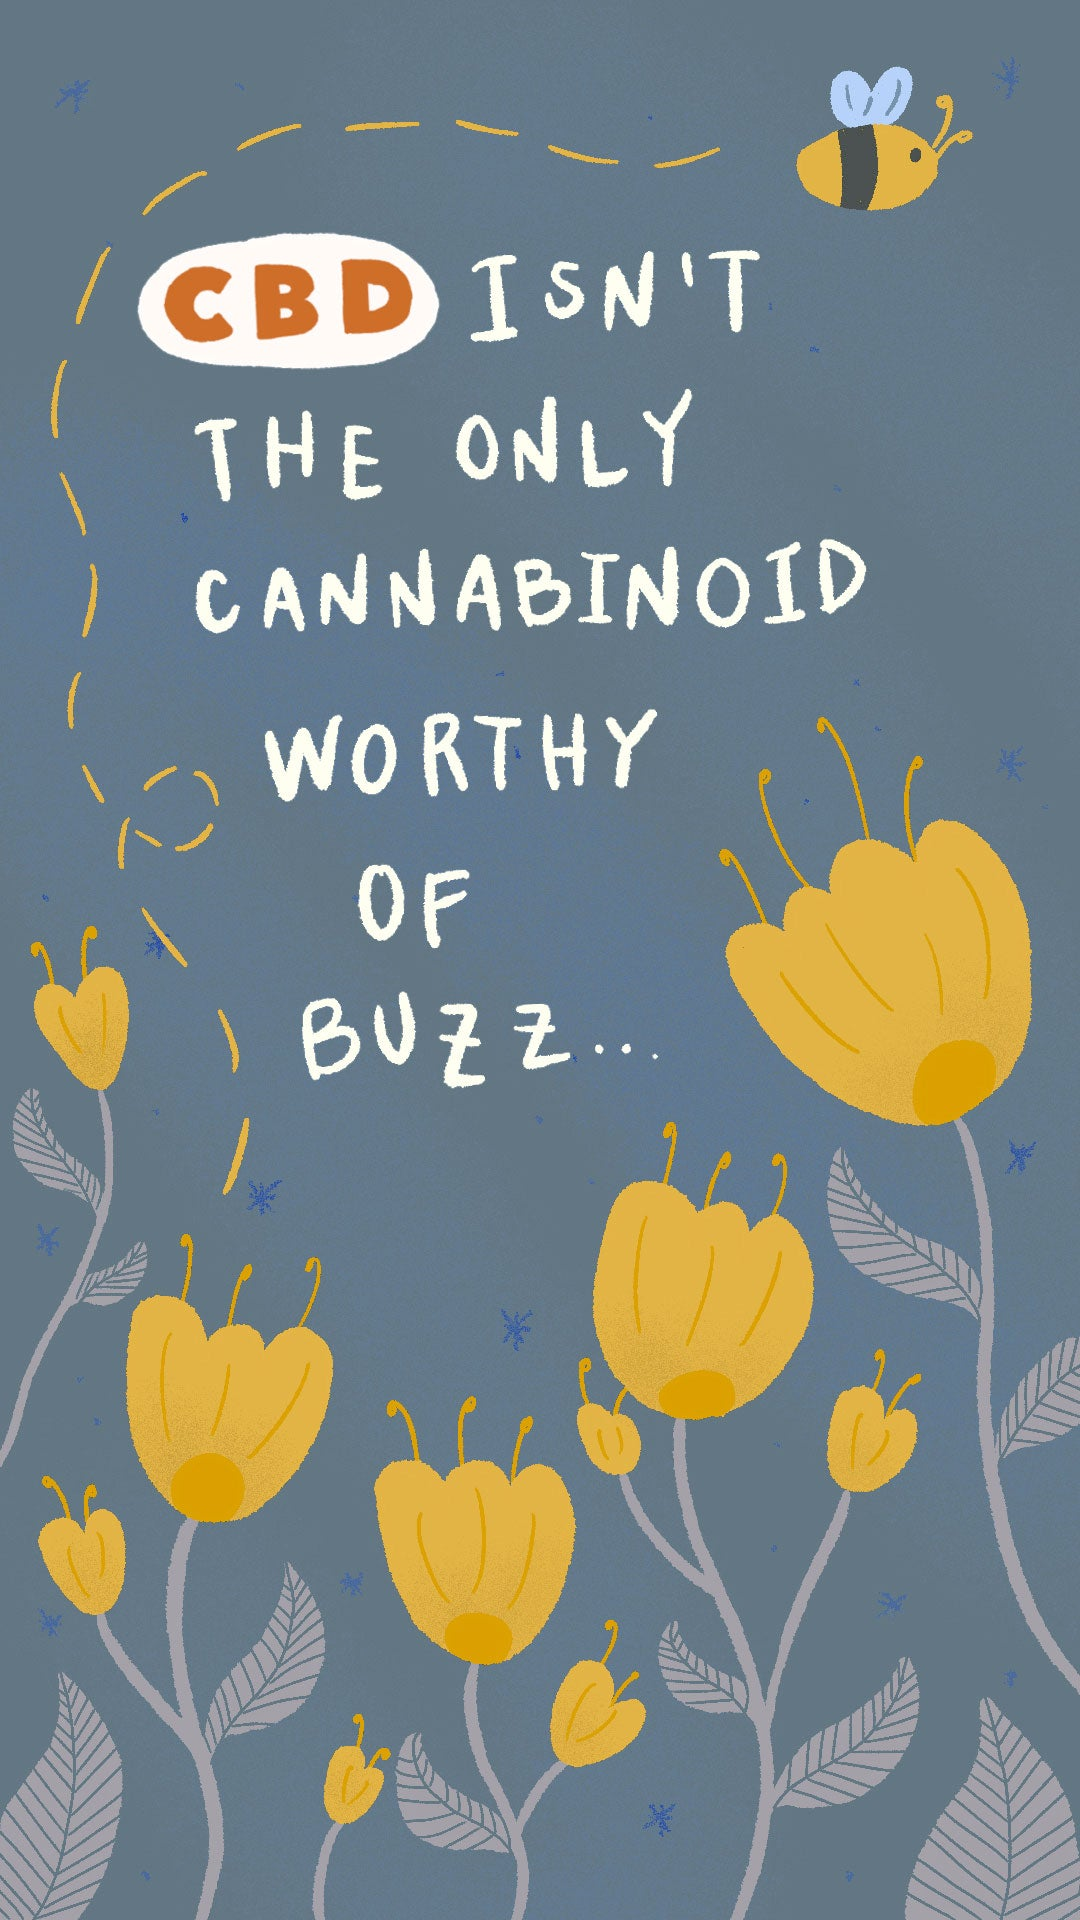 What's CBN - CBD isn't the only cannabinoid worthy of buzz